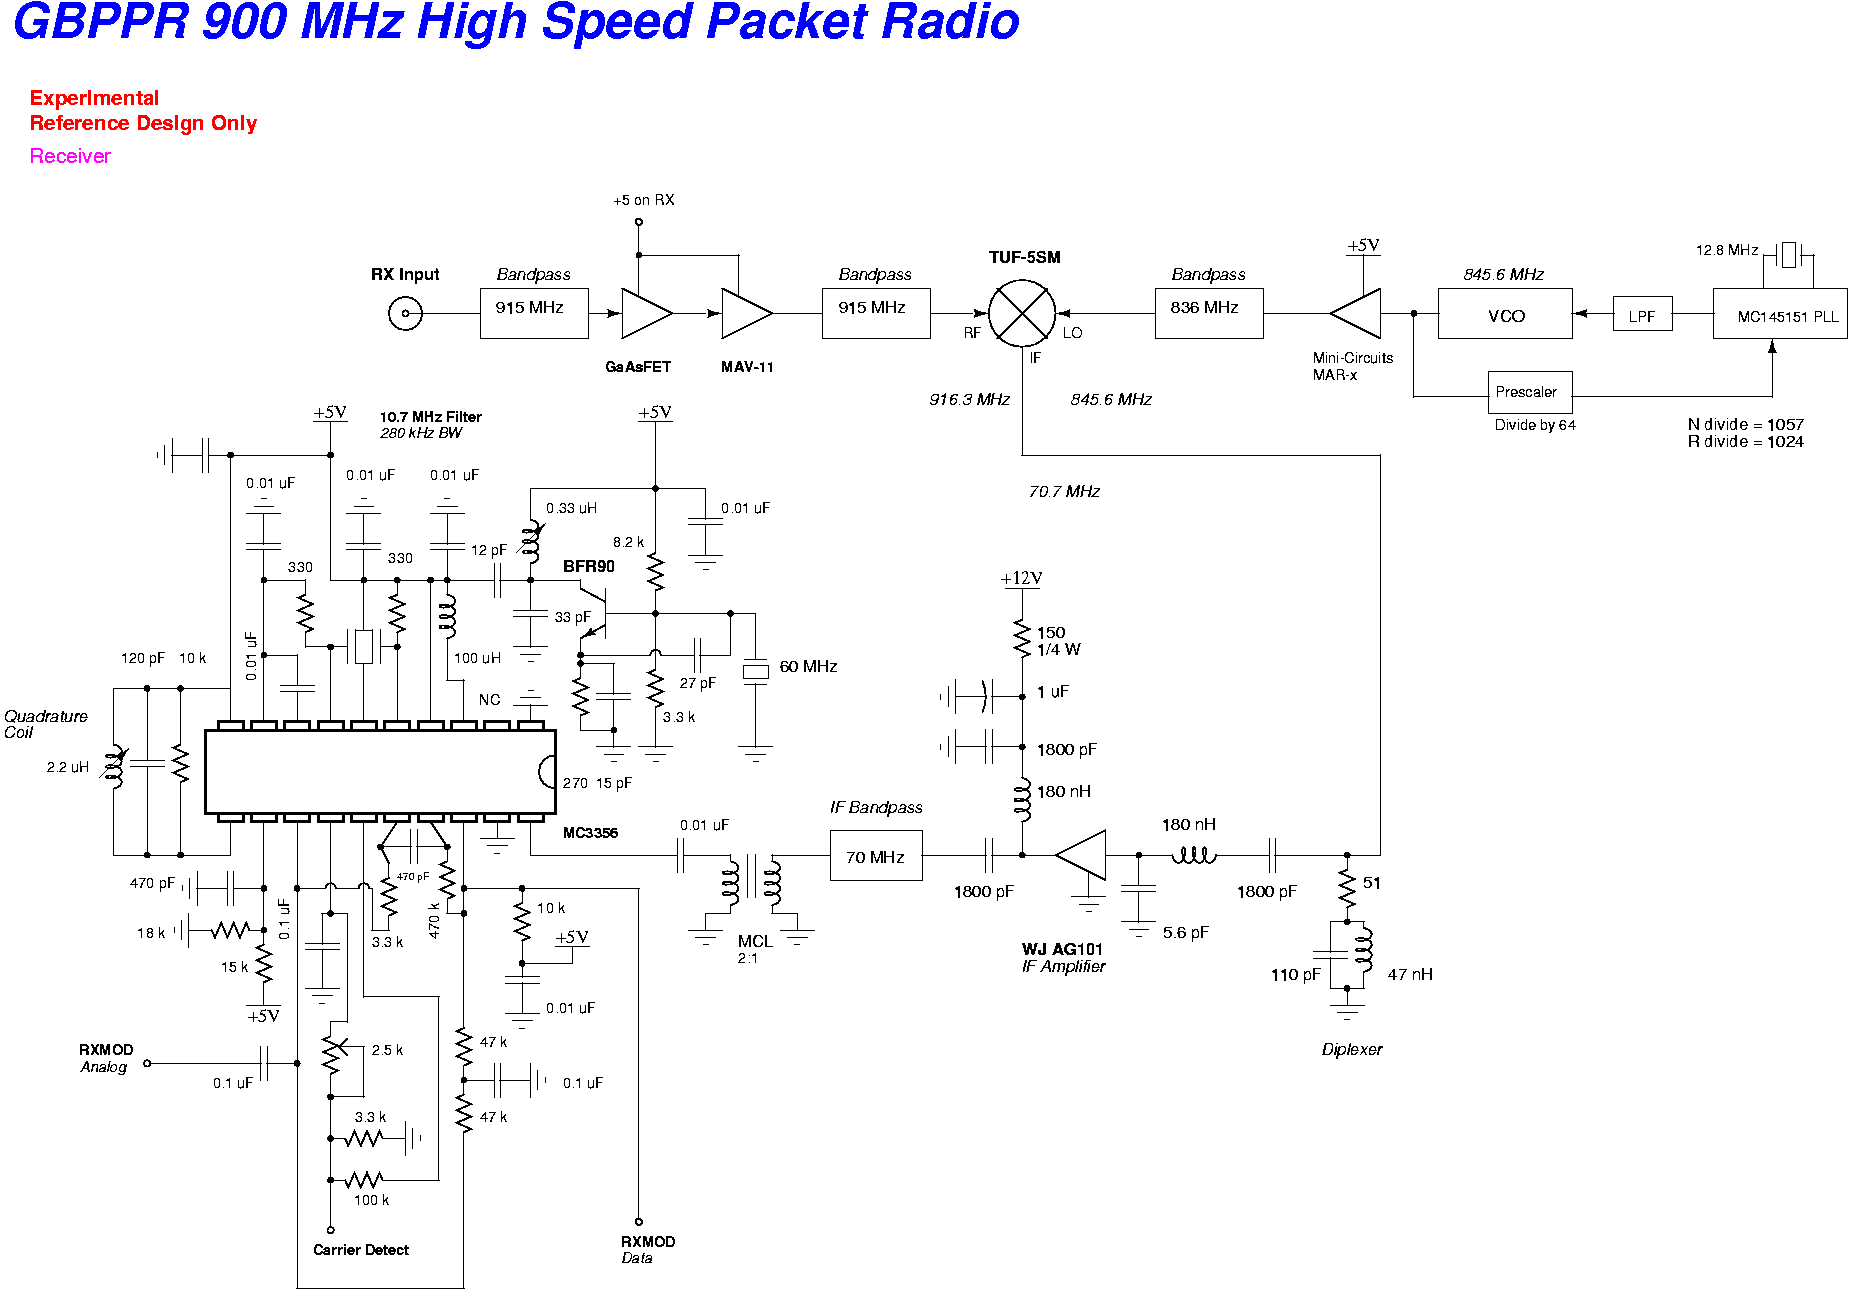 GBPPR 900 MHz High Speed Packet Radio